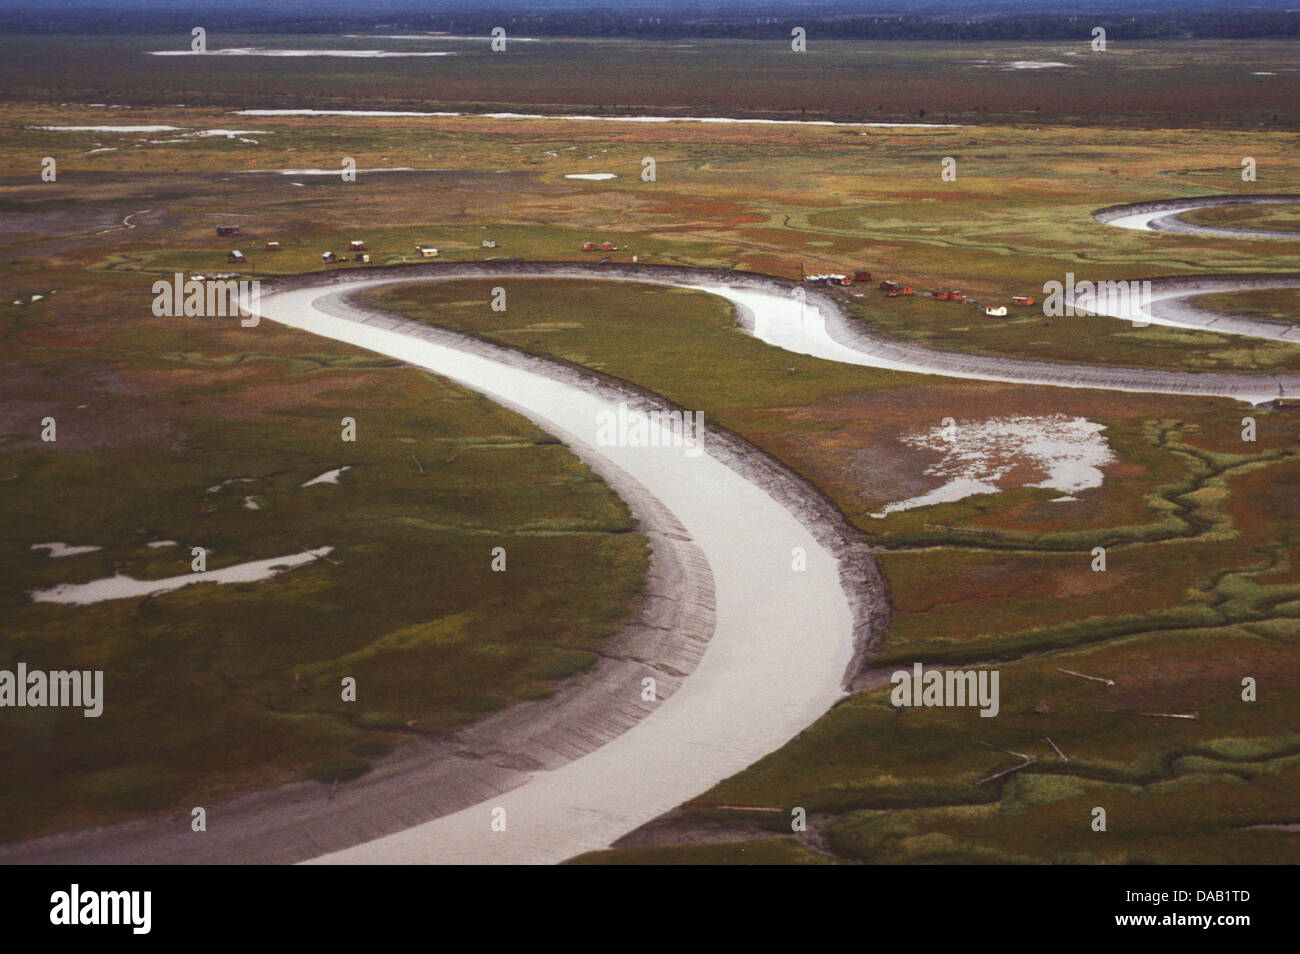 Costal Flats, Crook Inlet, Alaska, USA, snake, twisting, river, canal, channel, stream, irrigation, creek, farming, - Stock Image